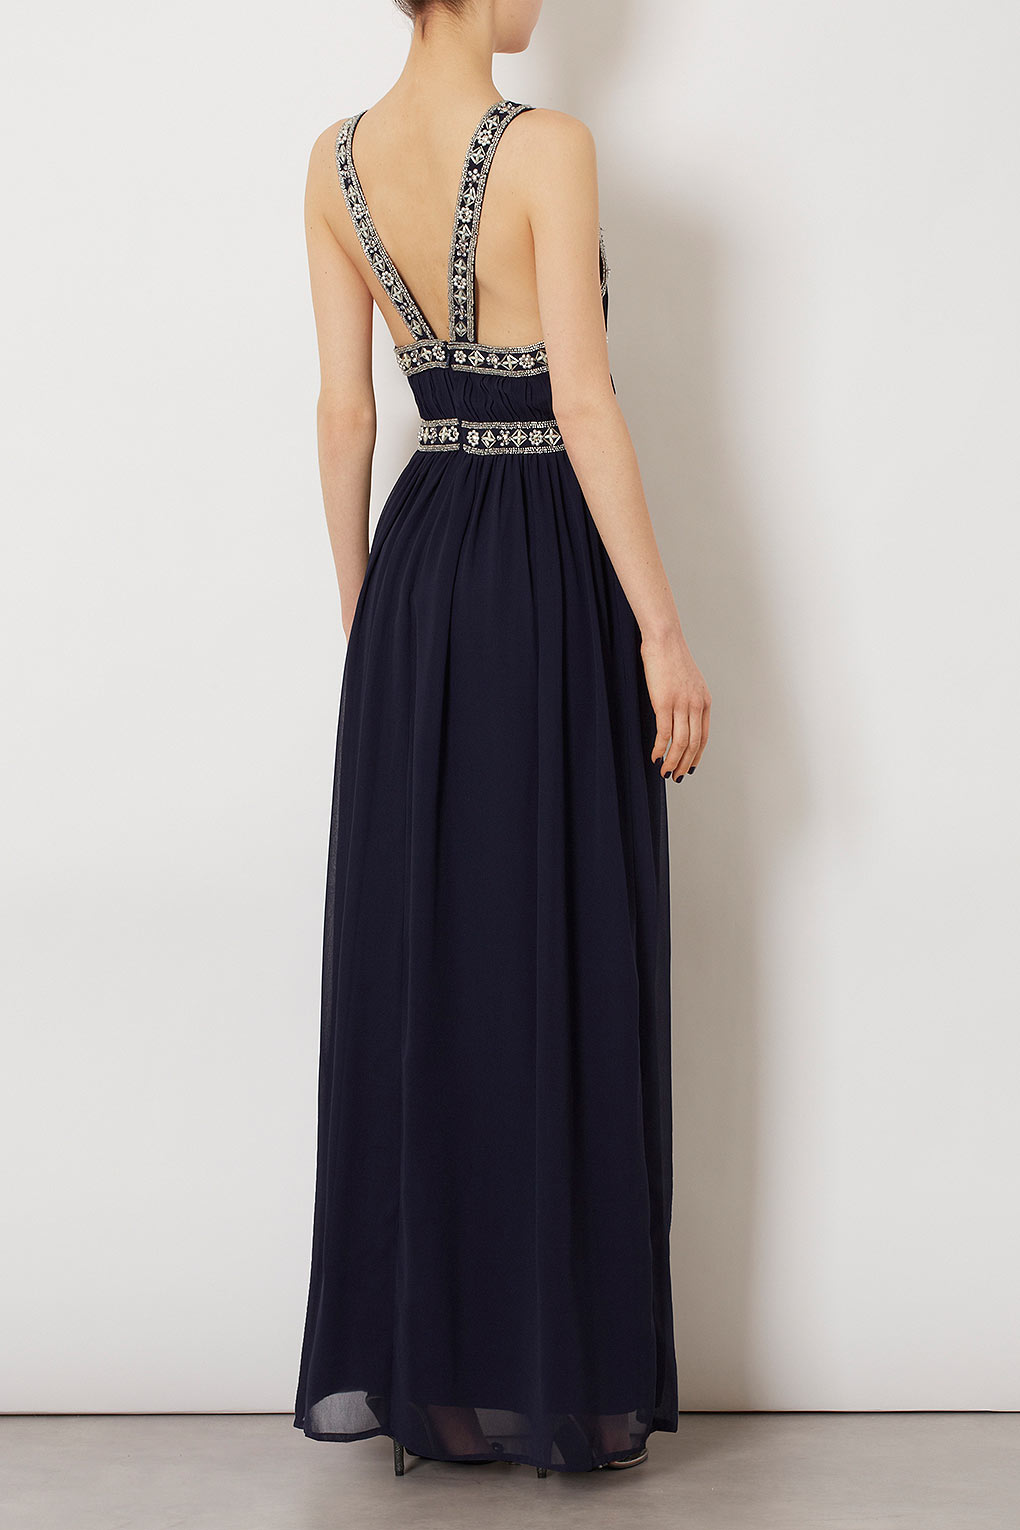 Topshop Embellished Panel Maxi Dress In Blue Lyst